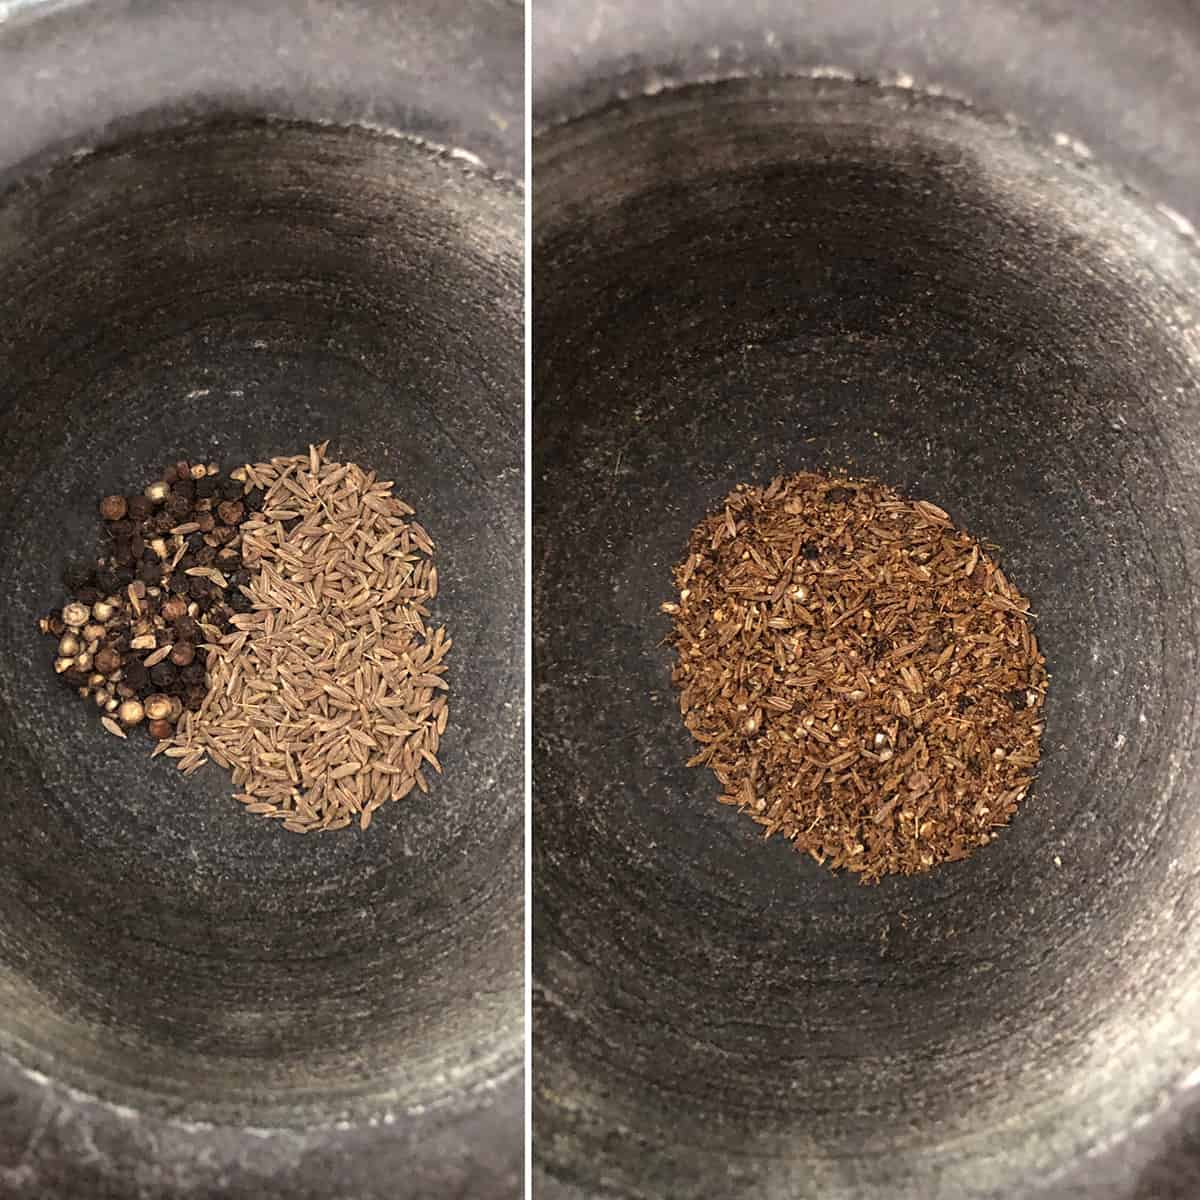 Mortar with peppercorns and cumin seeds ground to coarse powder